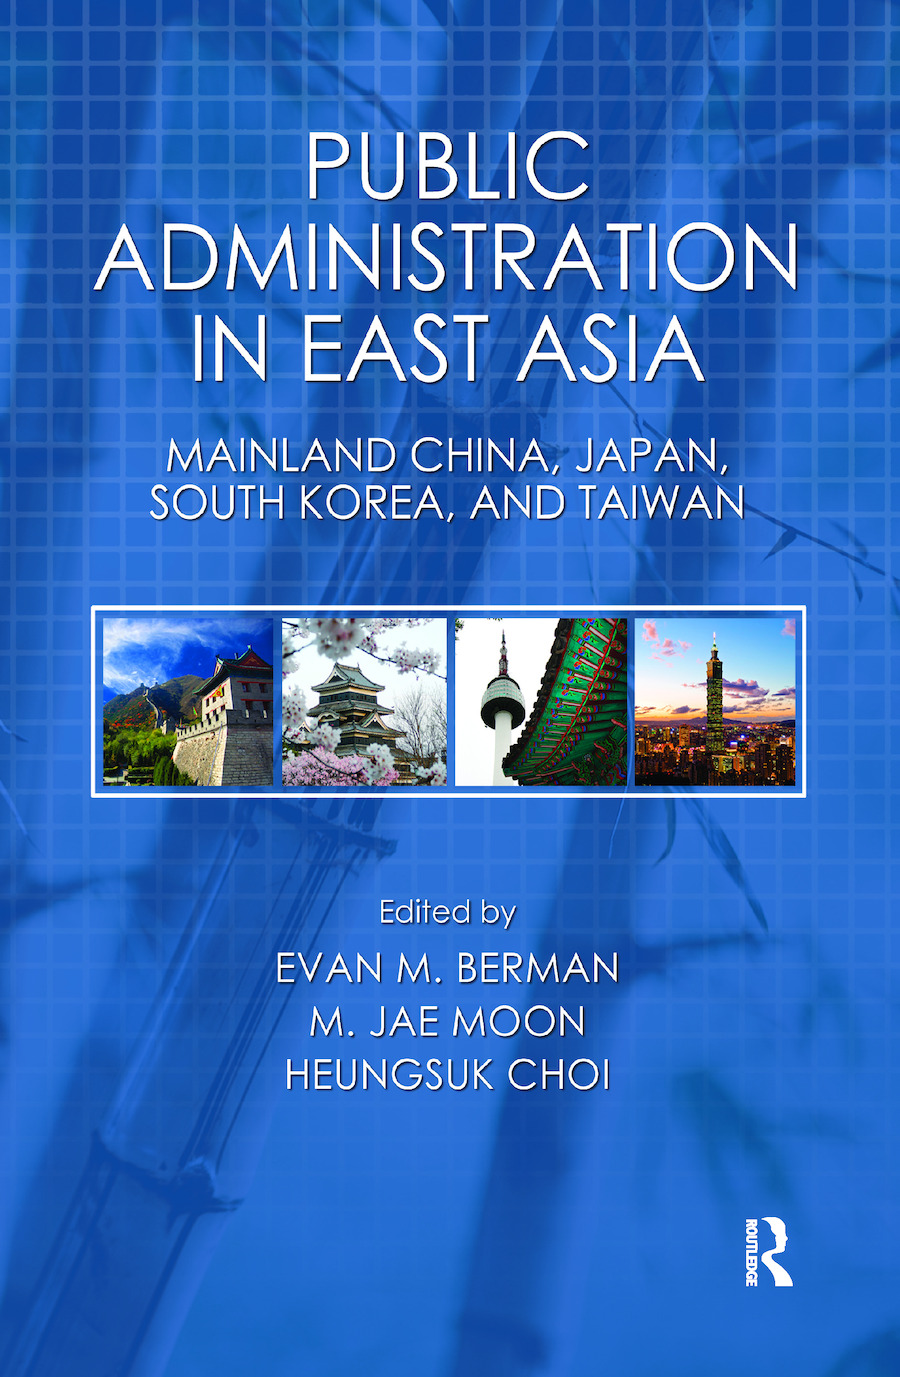 Public Administration in East Asia: Mainland China, Japan, South Korea, Taiwan book cover